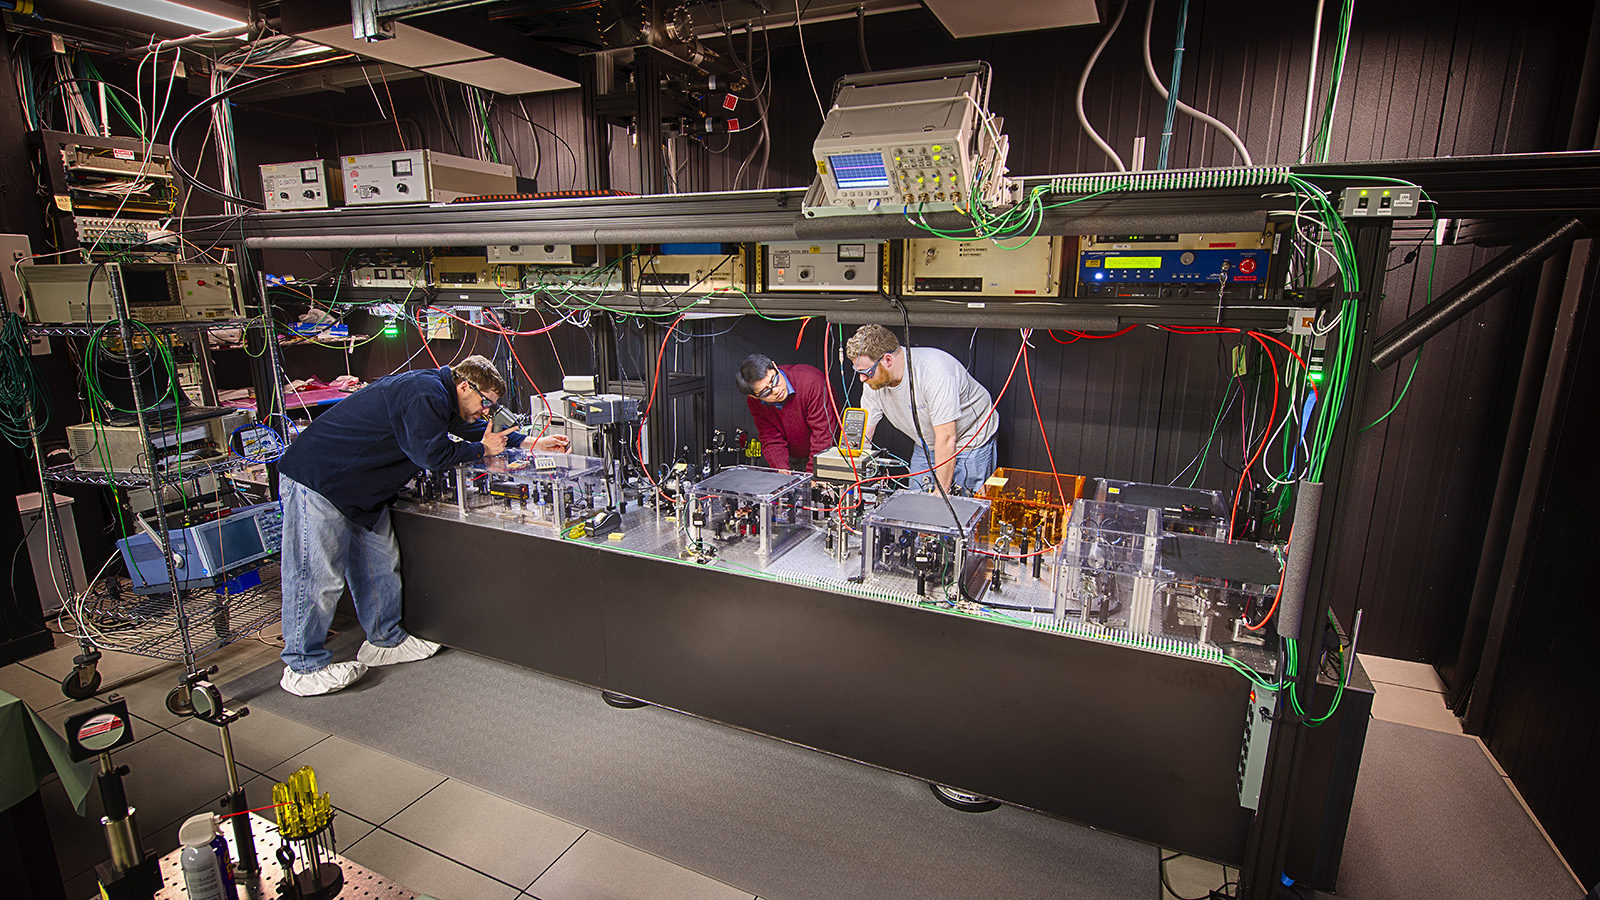 Scientists in laser safety goggles work in a laser lab